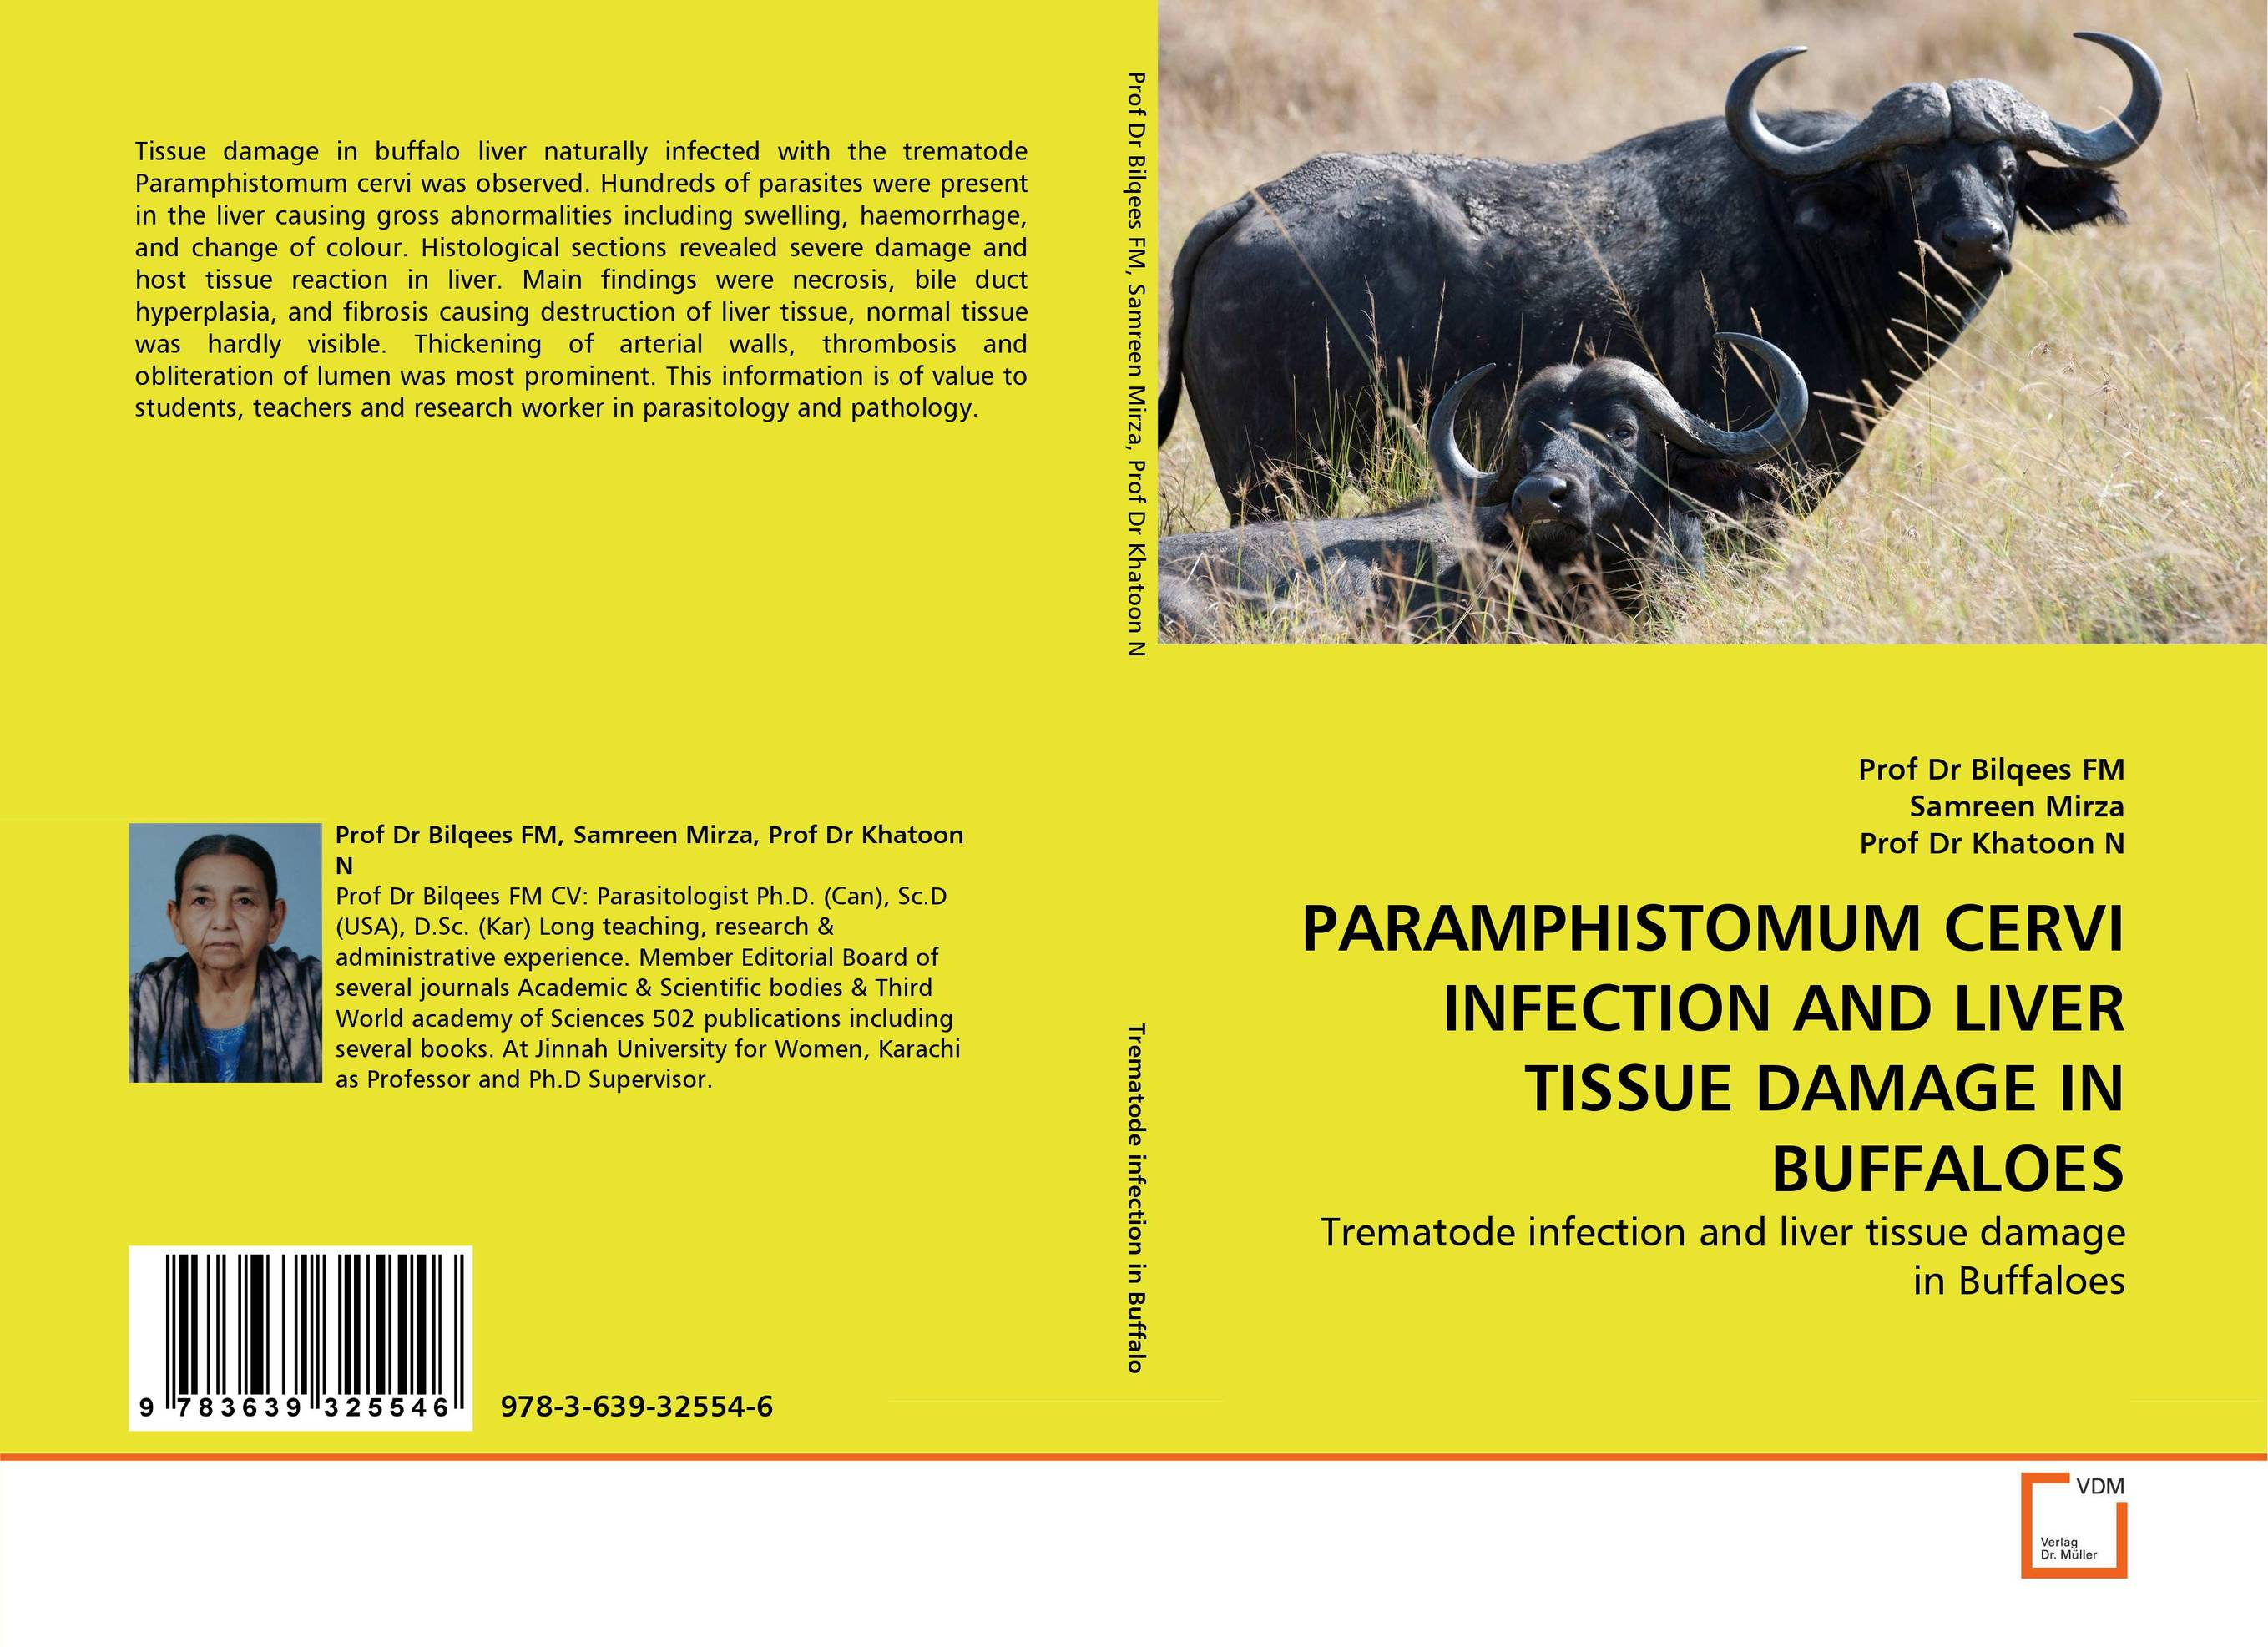 PARAMPHISTOMUM CERVI INFECTION AND LIVER TISSUE DAMAGE IN BUFFALOES fatty liver imaging patterns and pitfalls